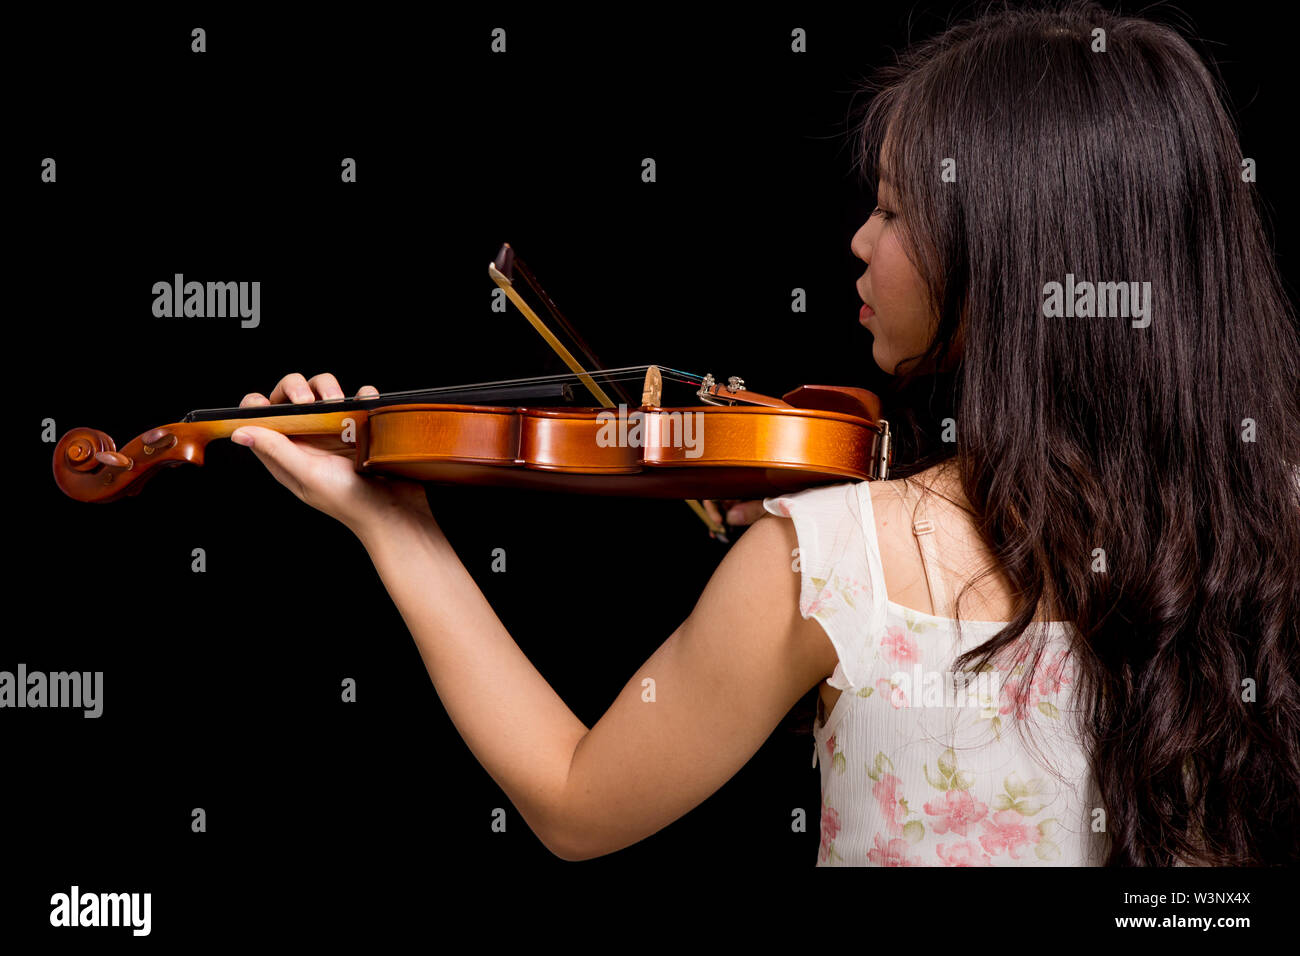 Asian woman and violin isolated over black background - Stock Image